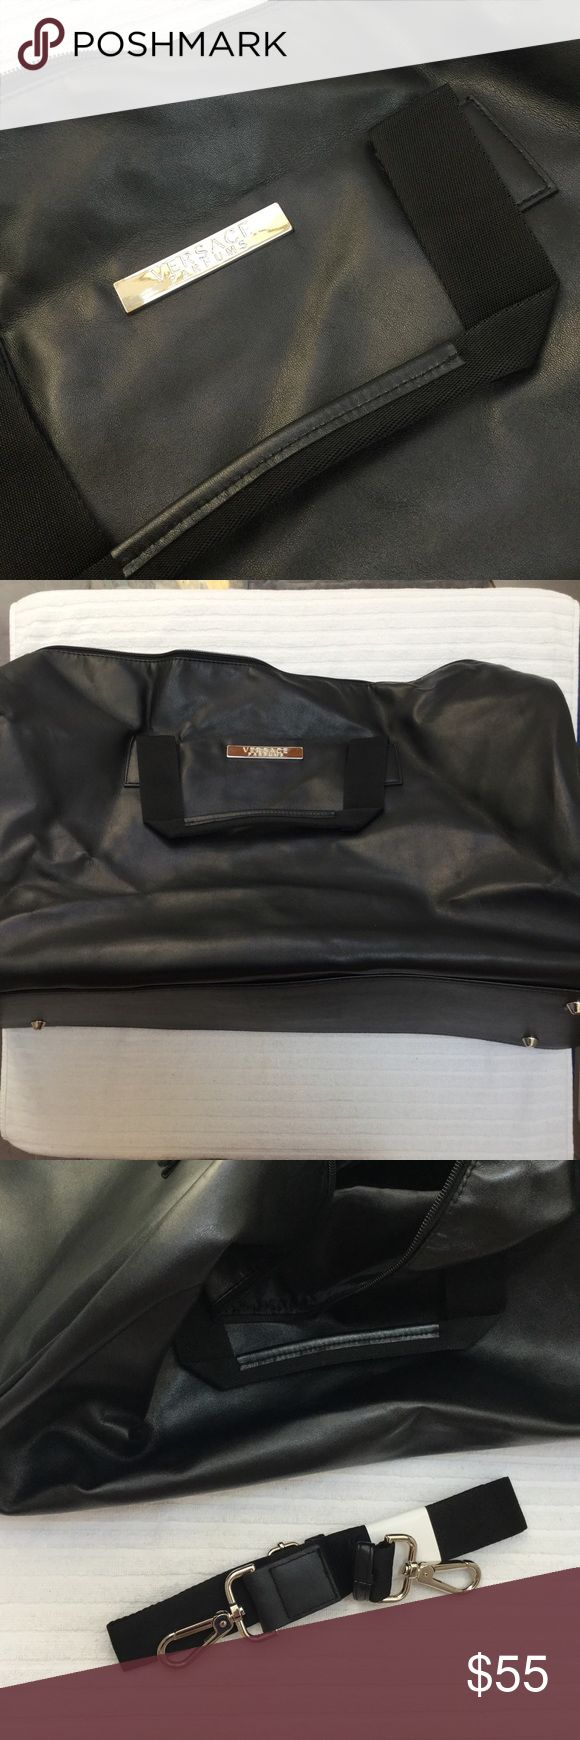 NWOT Versace Leather Duffle Genuine leather Versace duffle bag, never used. Measures 24 inches wide and 16 inches deep, the third picture shows the unopened, detachable shoulder strap. Absolutely perfect condition Versace Bags Travel Bags